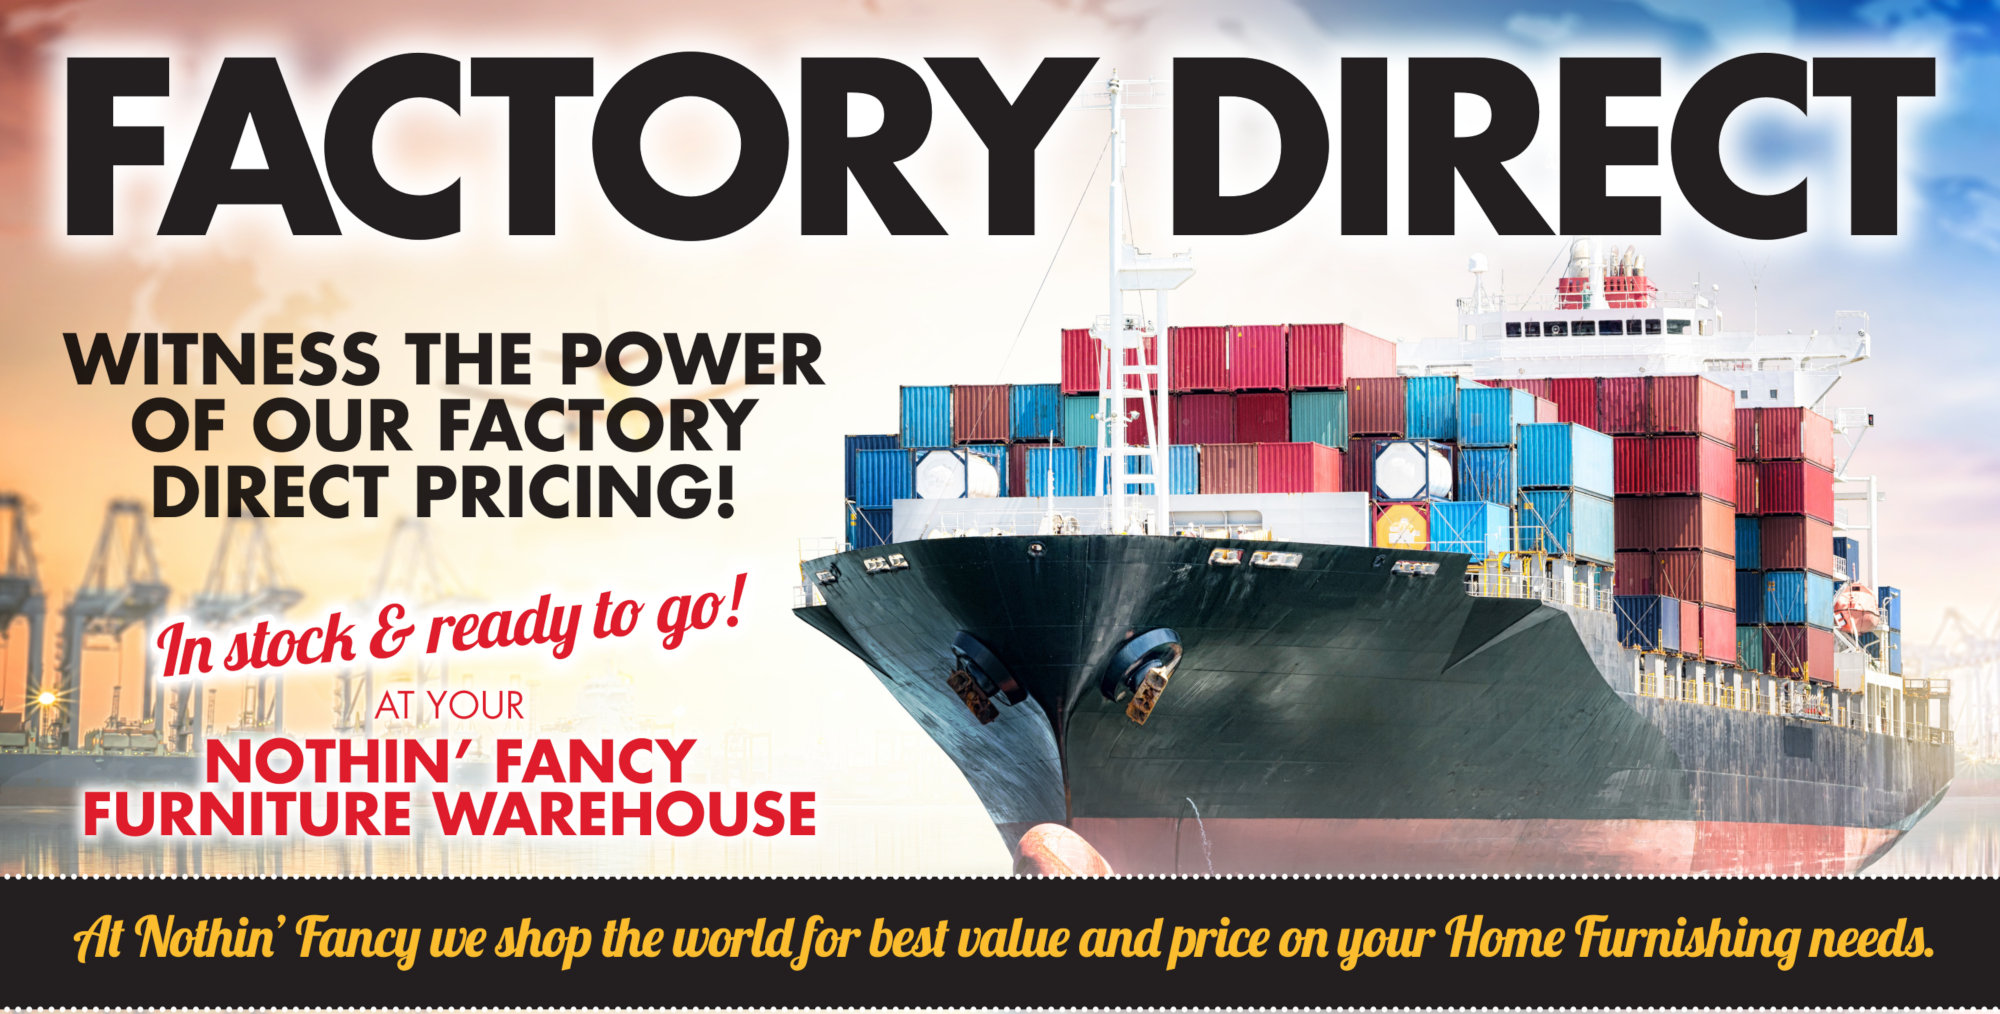 Factory Direct Pricing - Only At Your Nothin' Fancy Furniture Warehouse